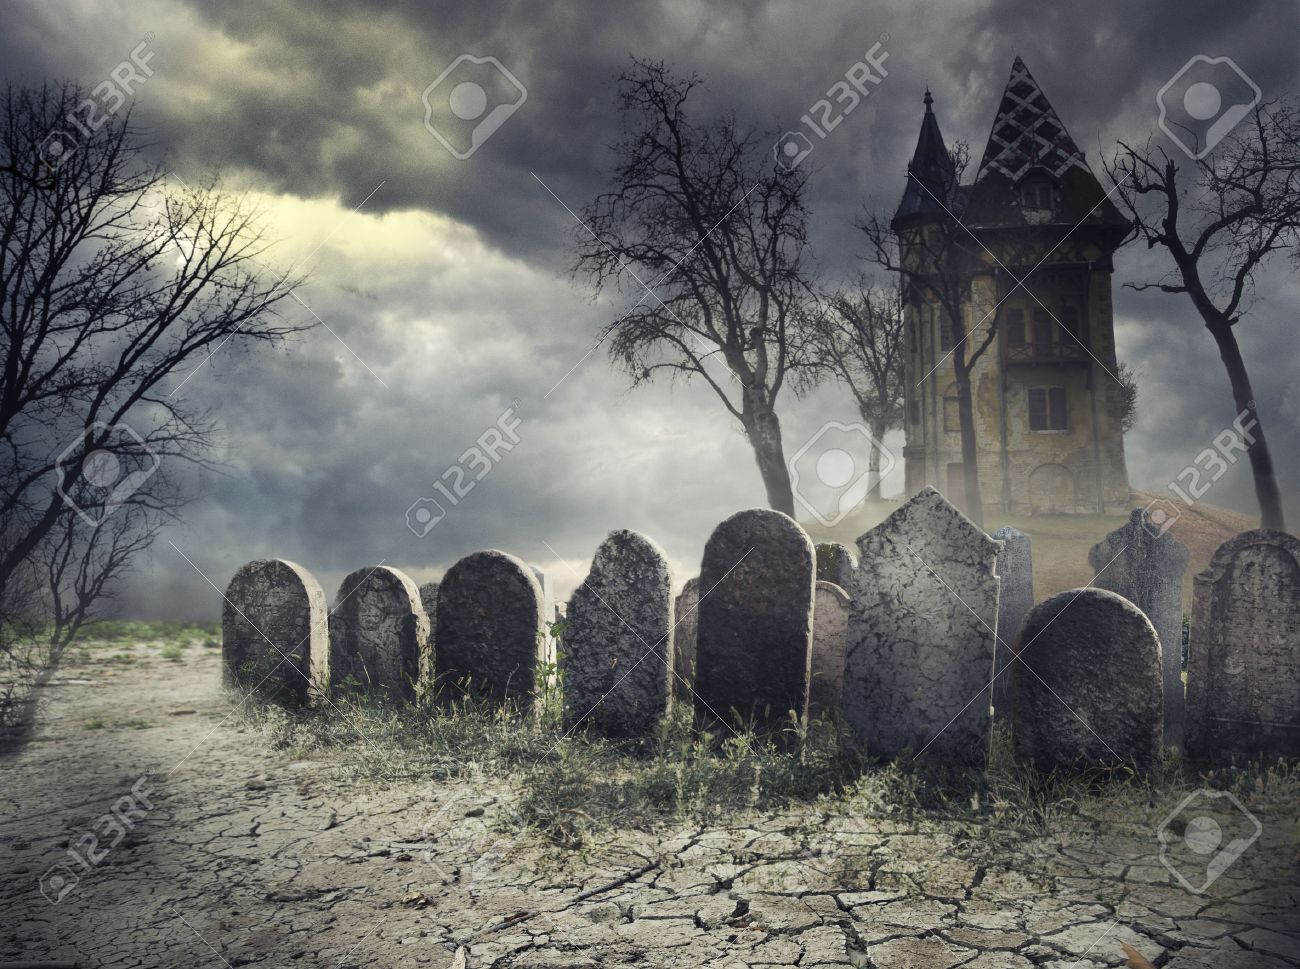 hounted house on spooky graveyard stock photo picture and royalty